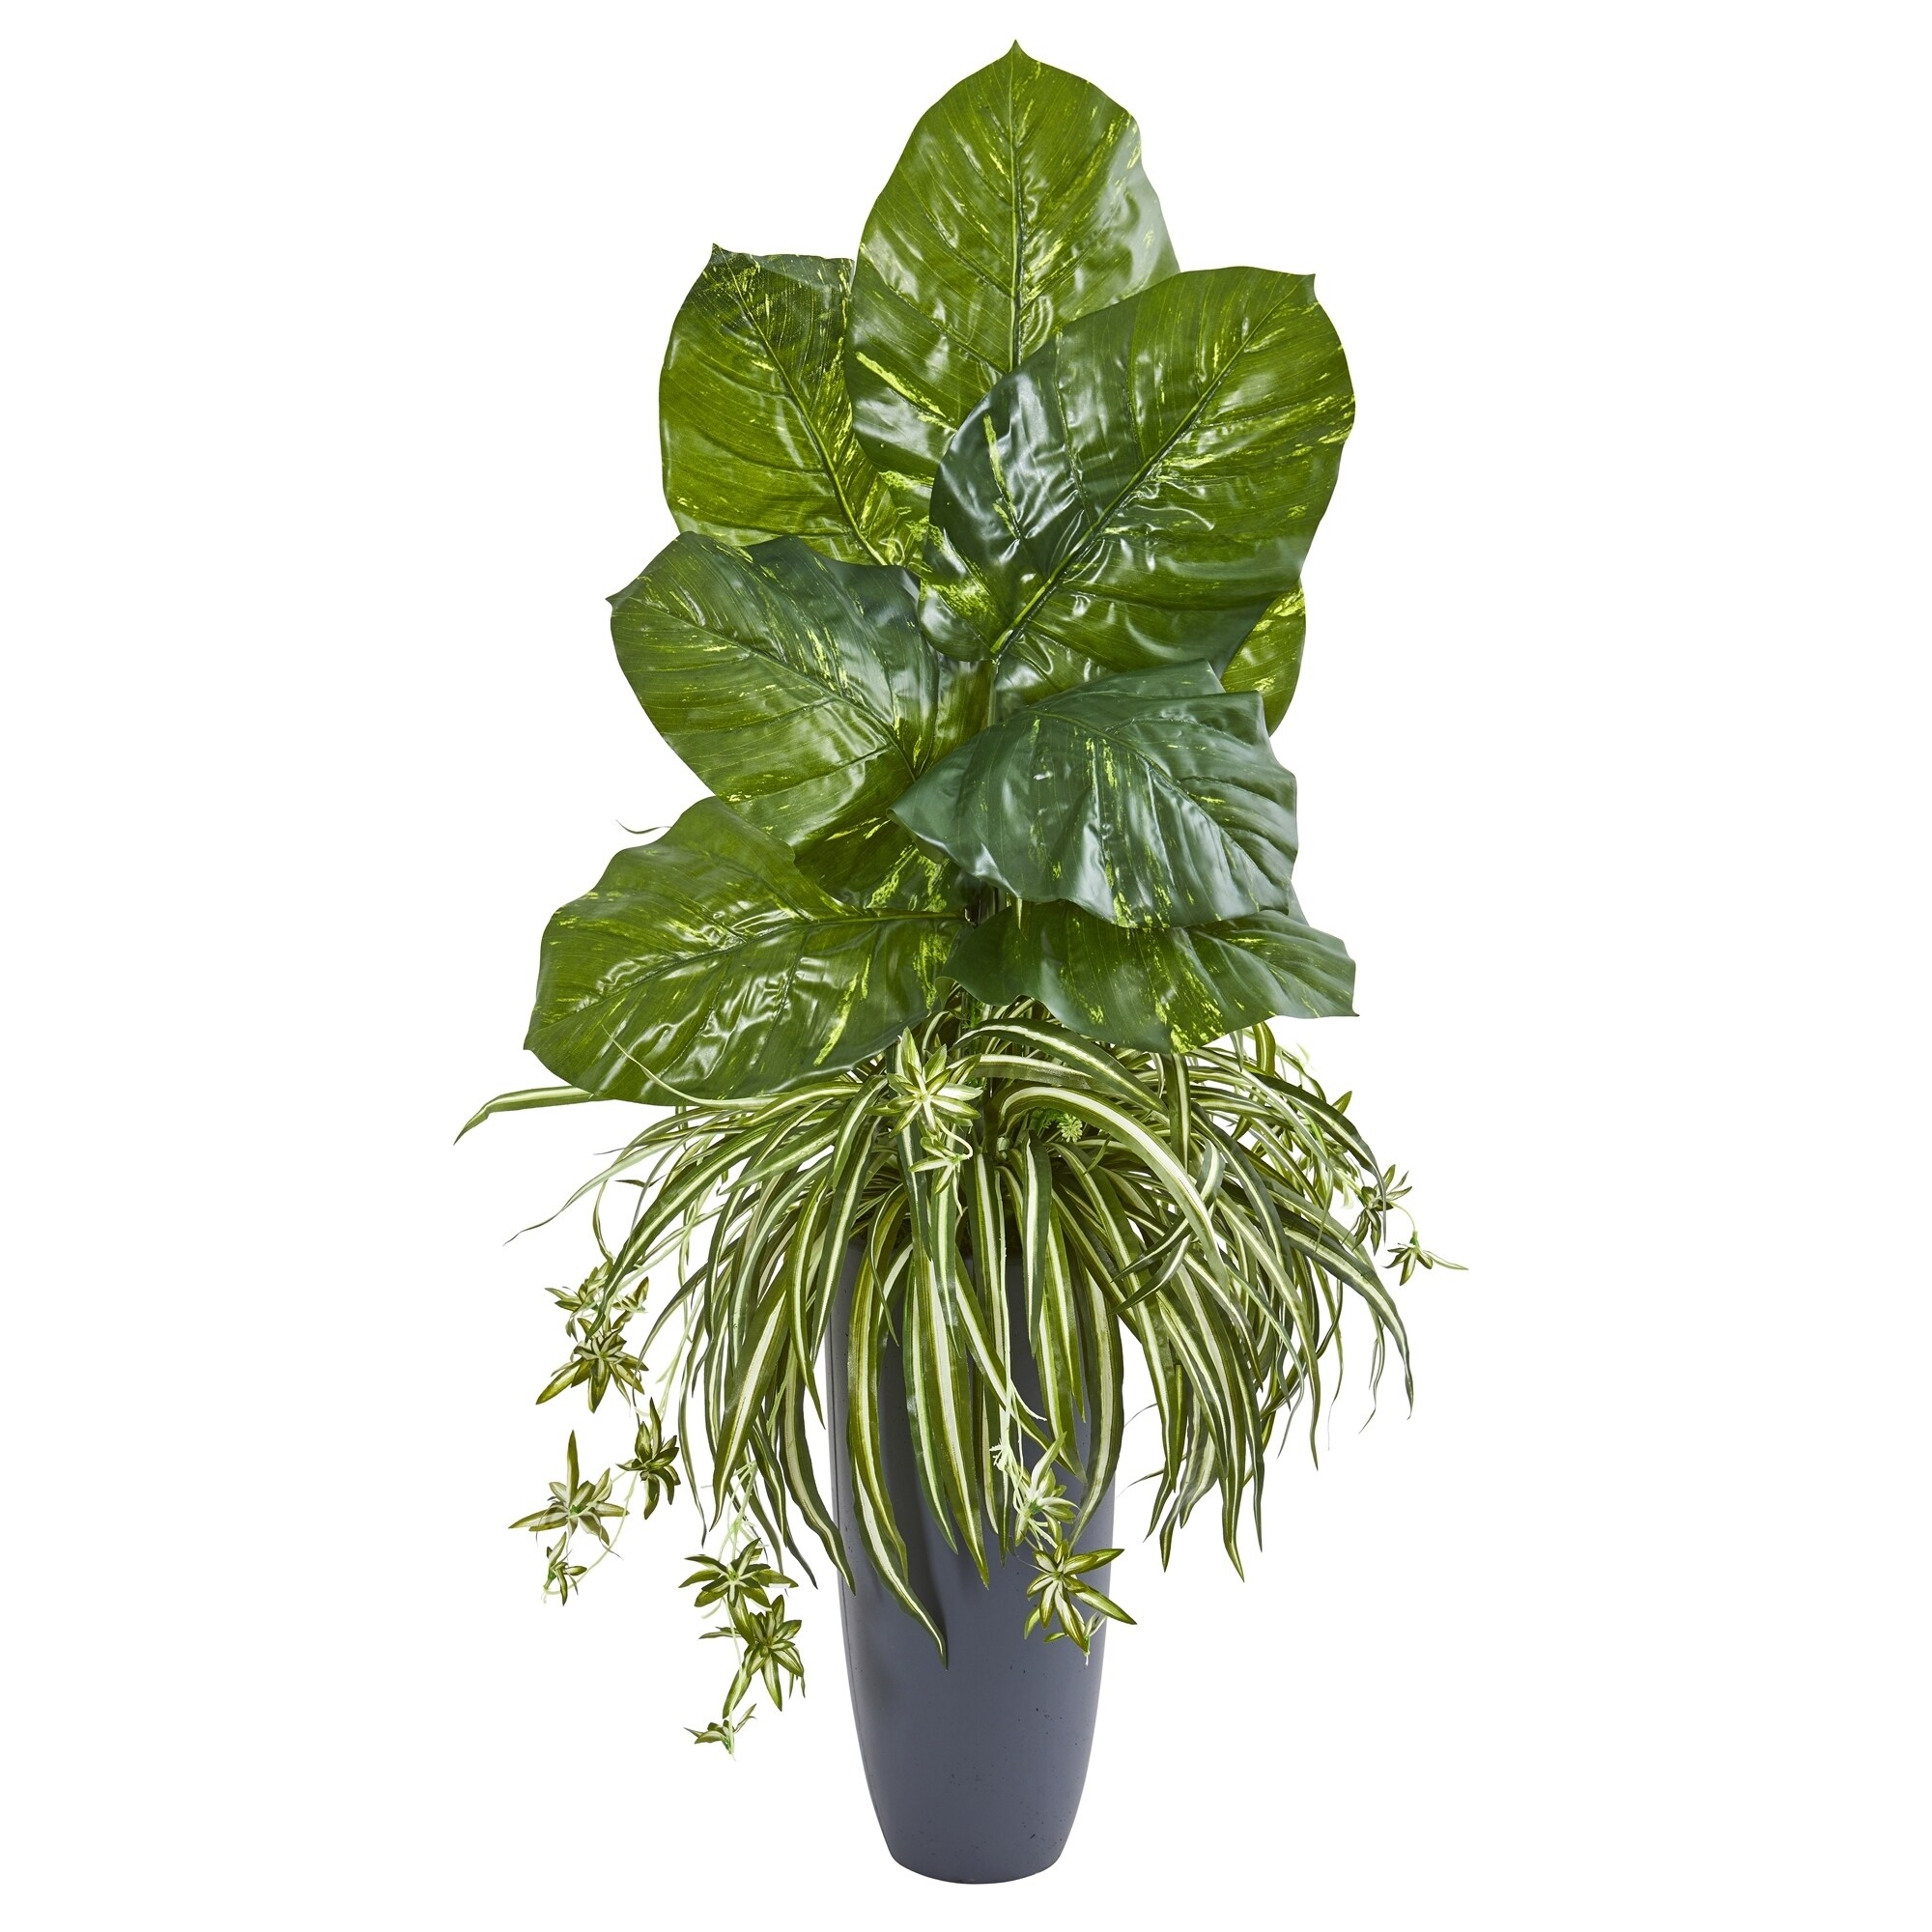 49 Spider and Pothos Artificial Plant in Gray Planter